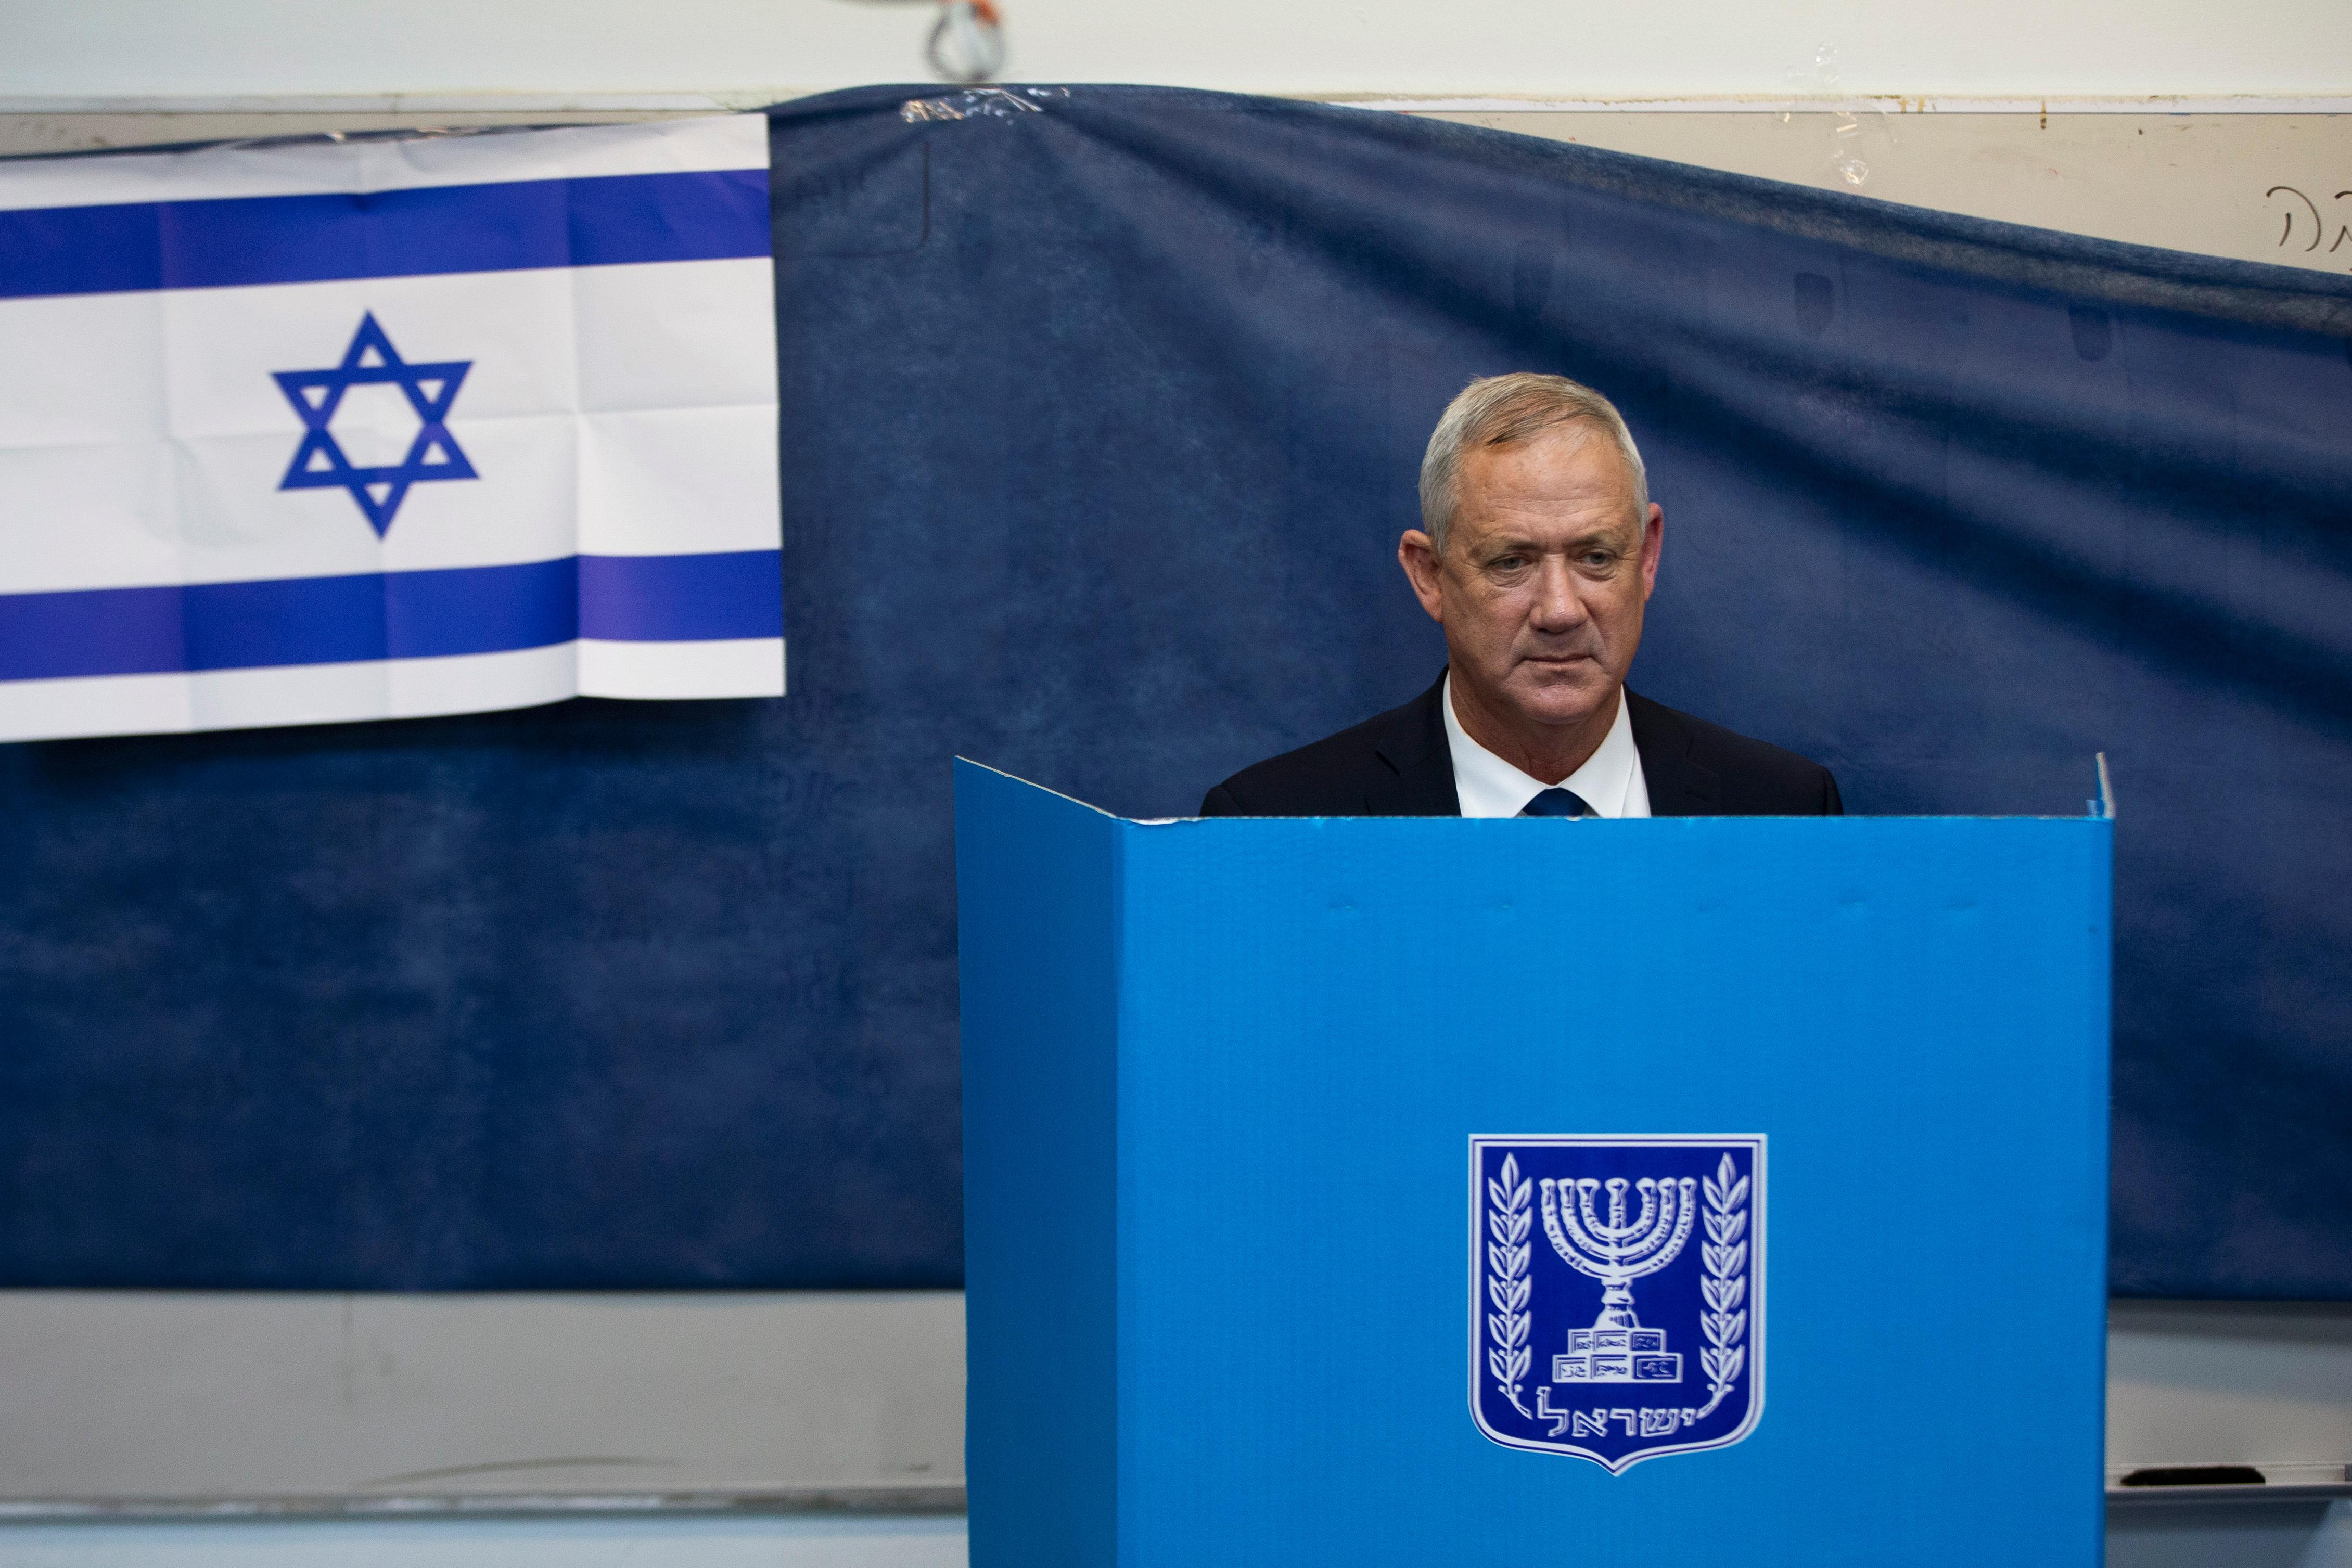 Warning of election 'disaster', Israel's Netanyahu battles for survival